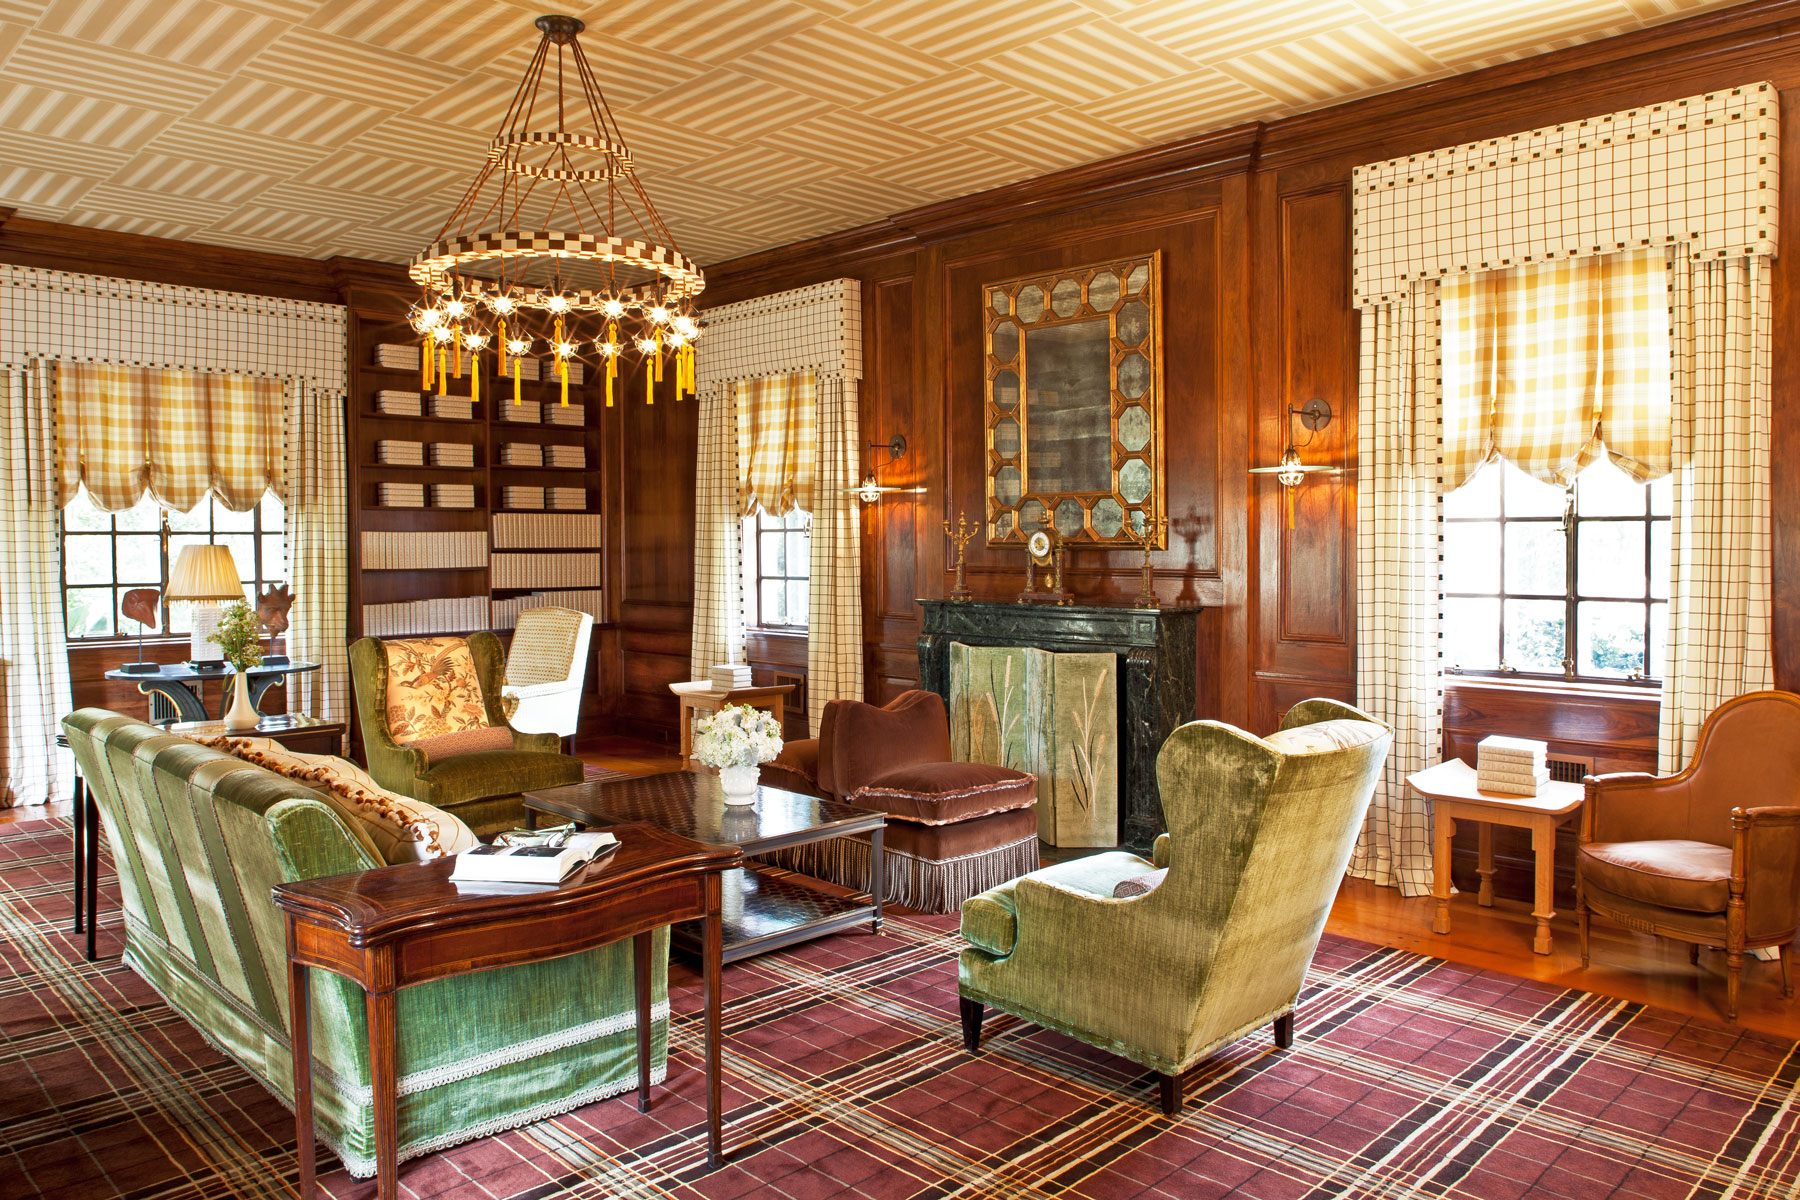 Designer Show House - This sitting room is from a show house in Rumson, New Jersey. I wanted to demonstrate how lovely the various plaids and patterns could look when you mix them all together.